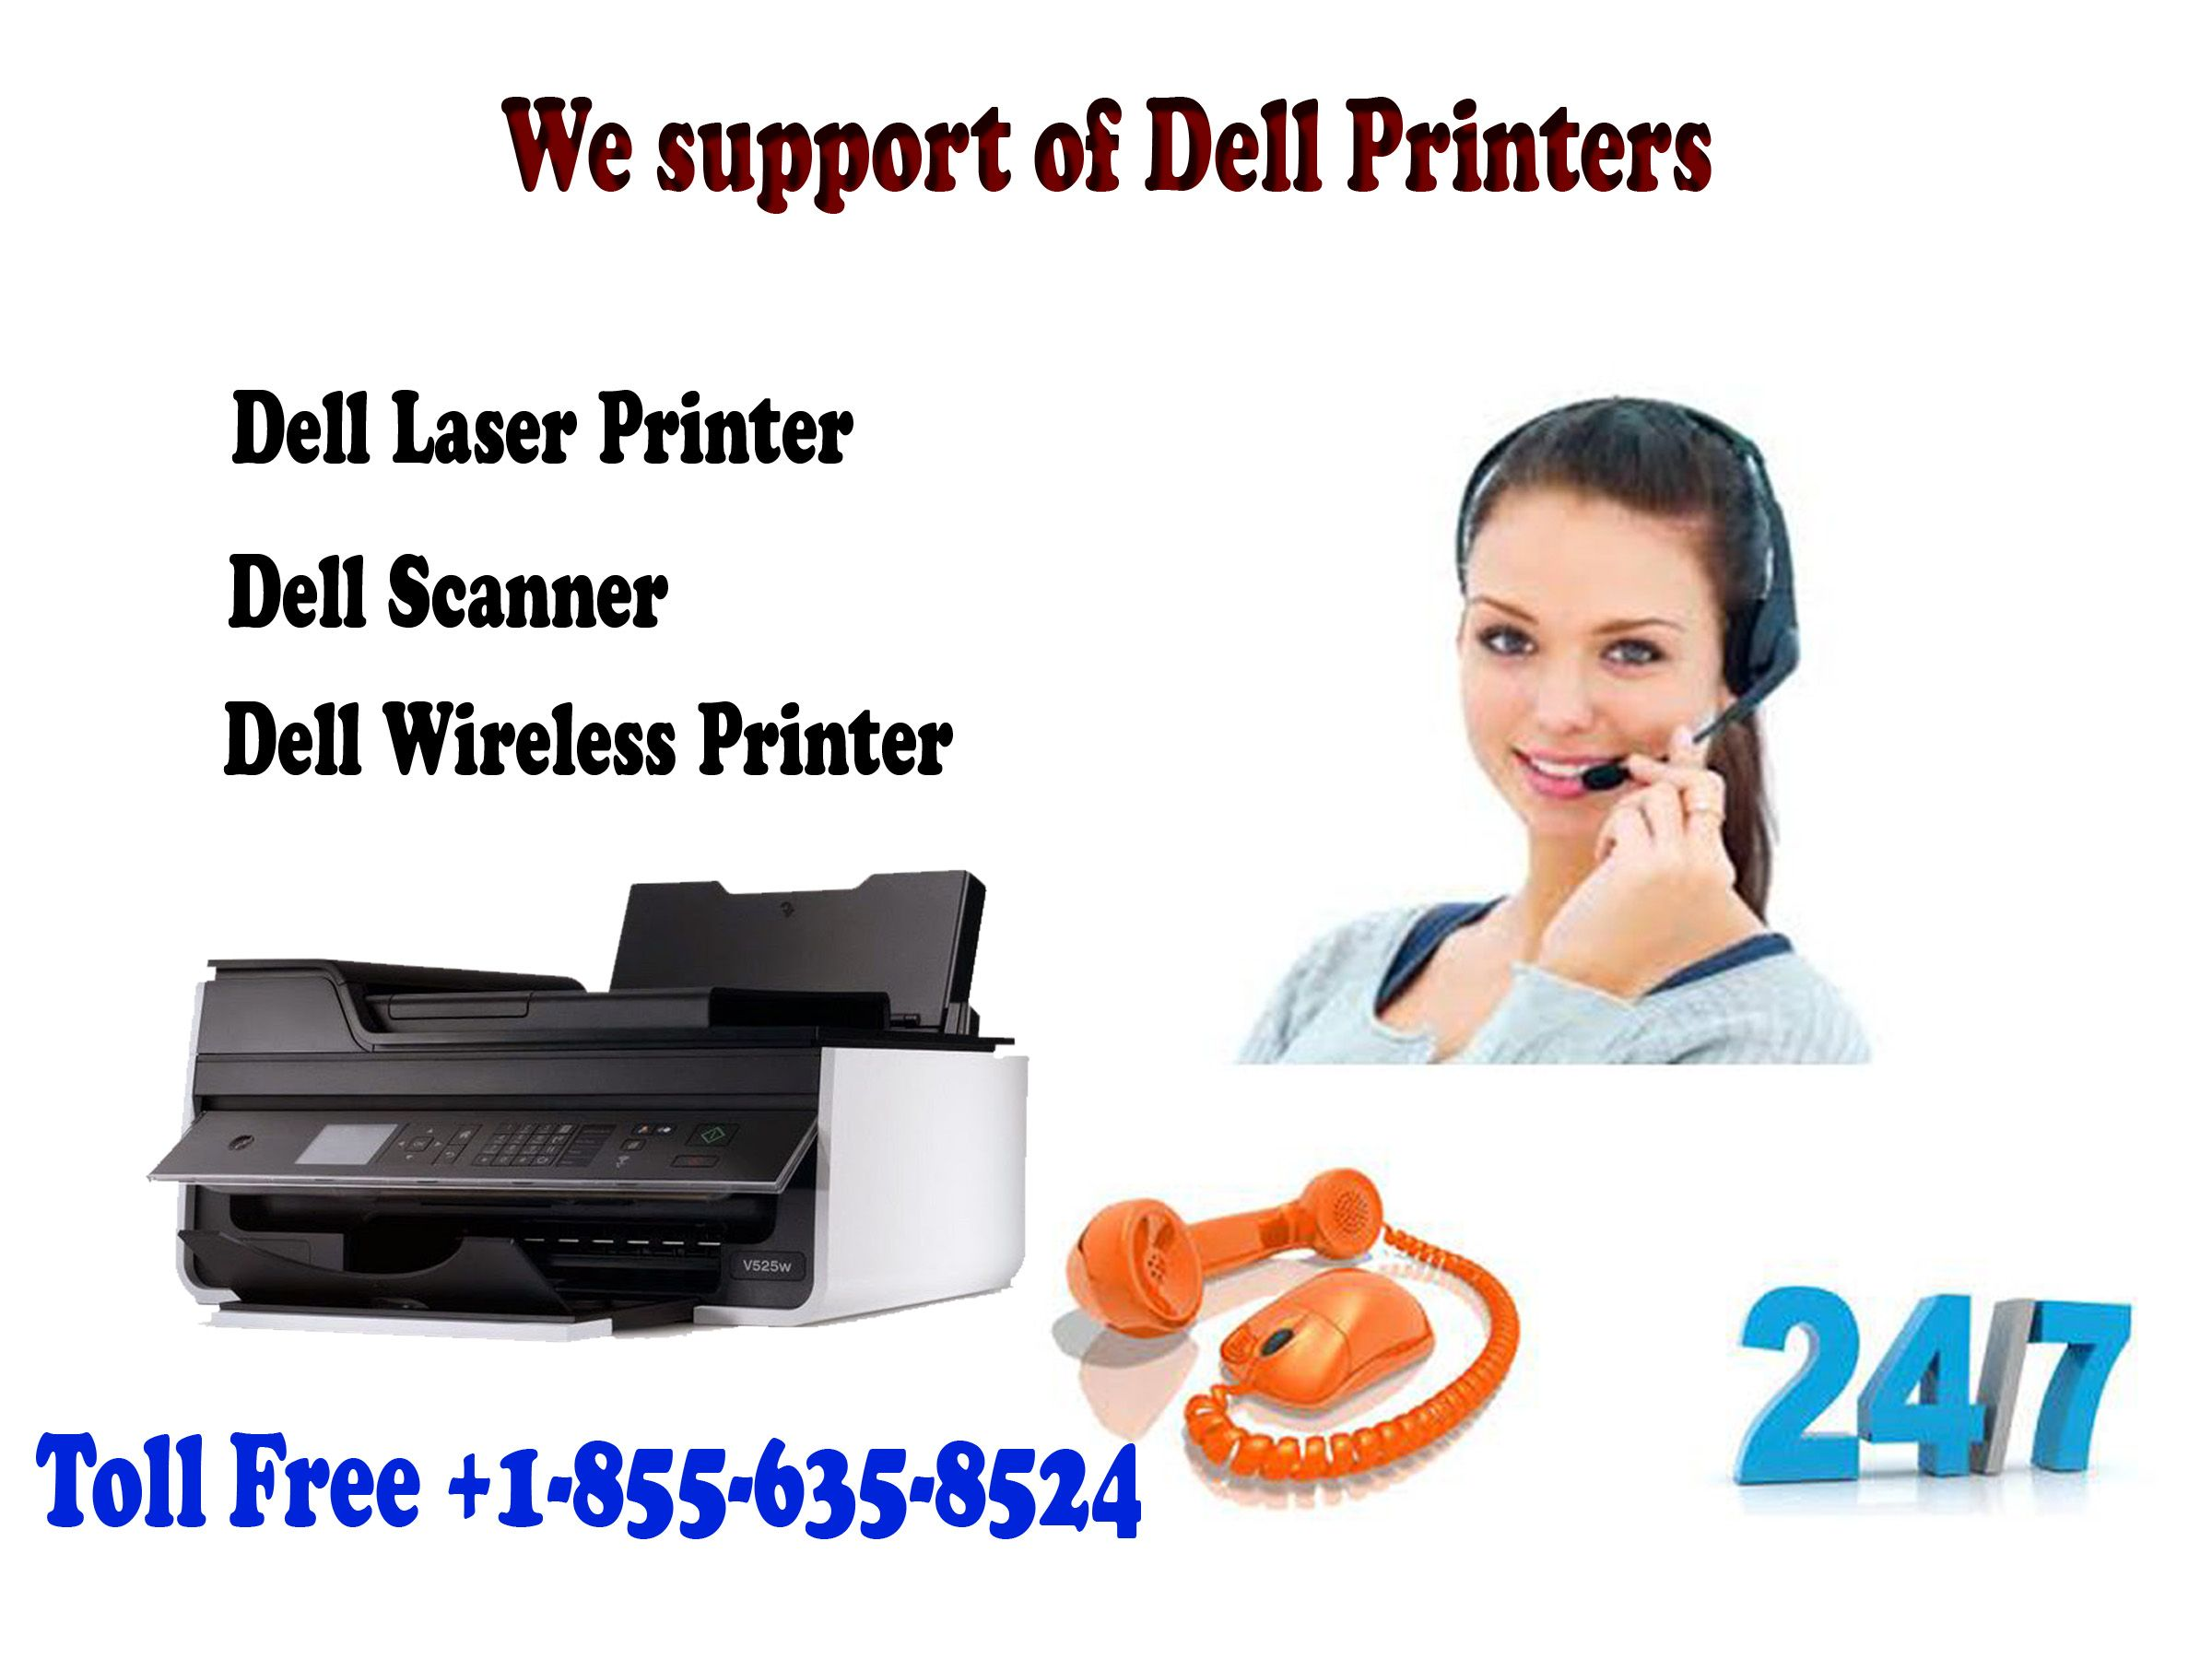 We offer Dell wireless printer setup support available to